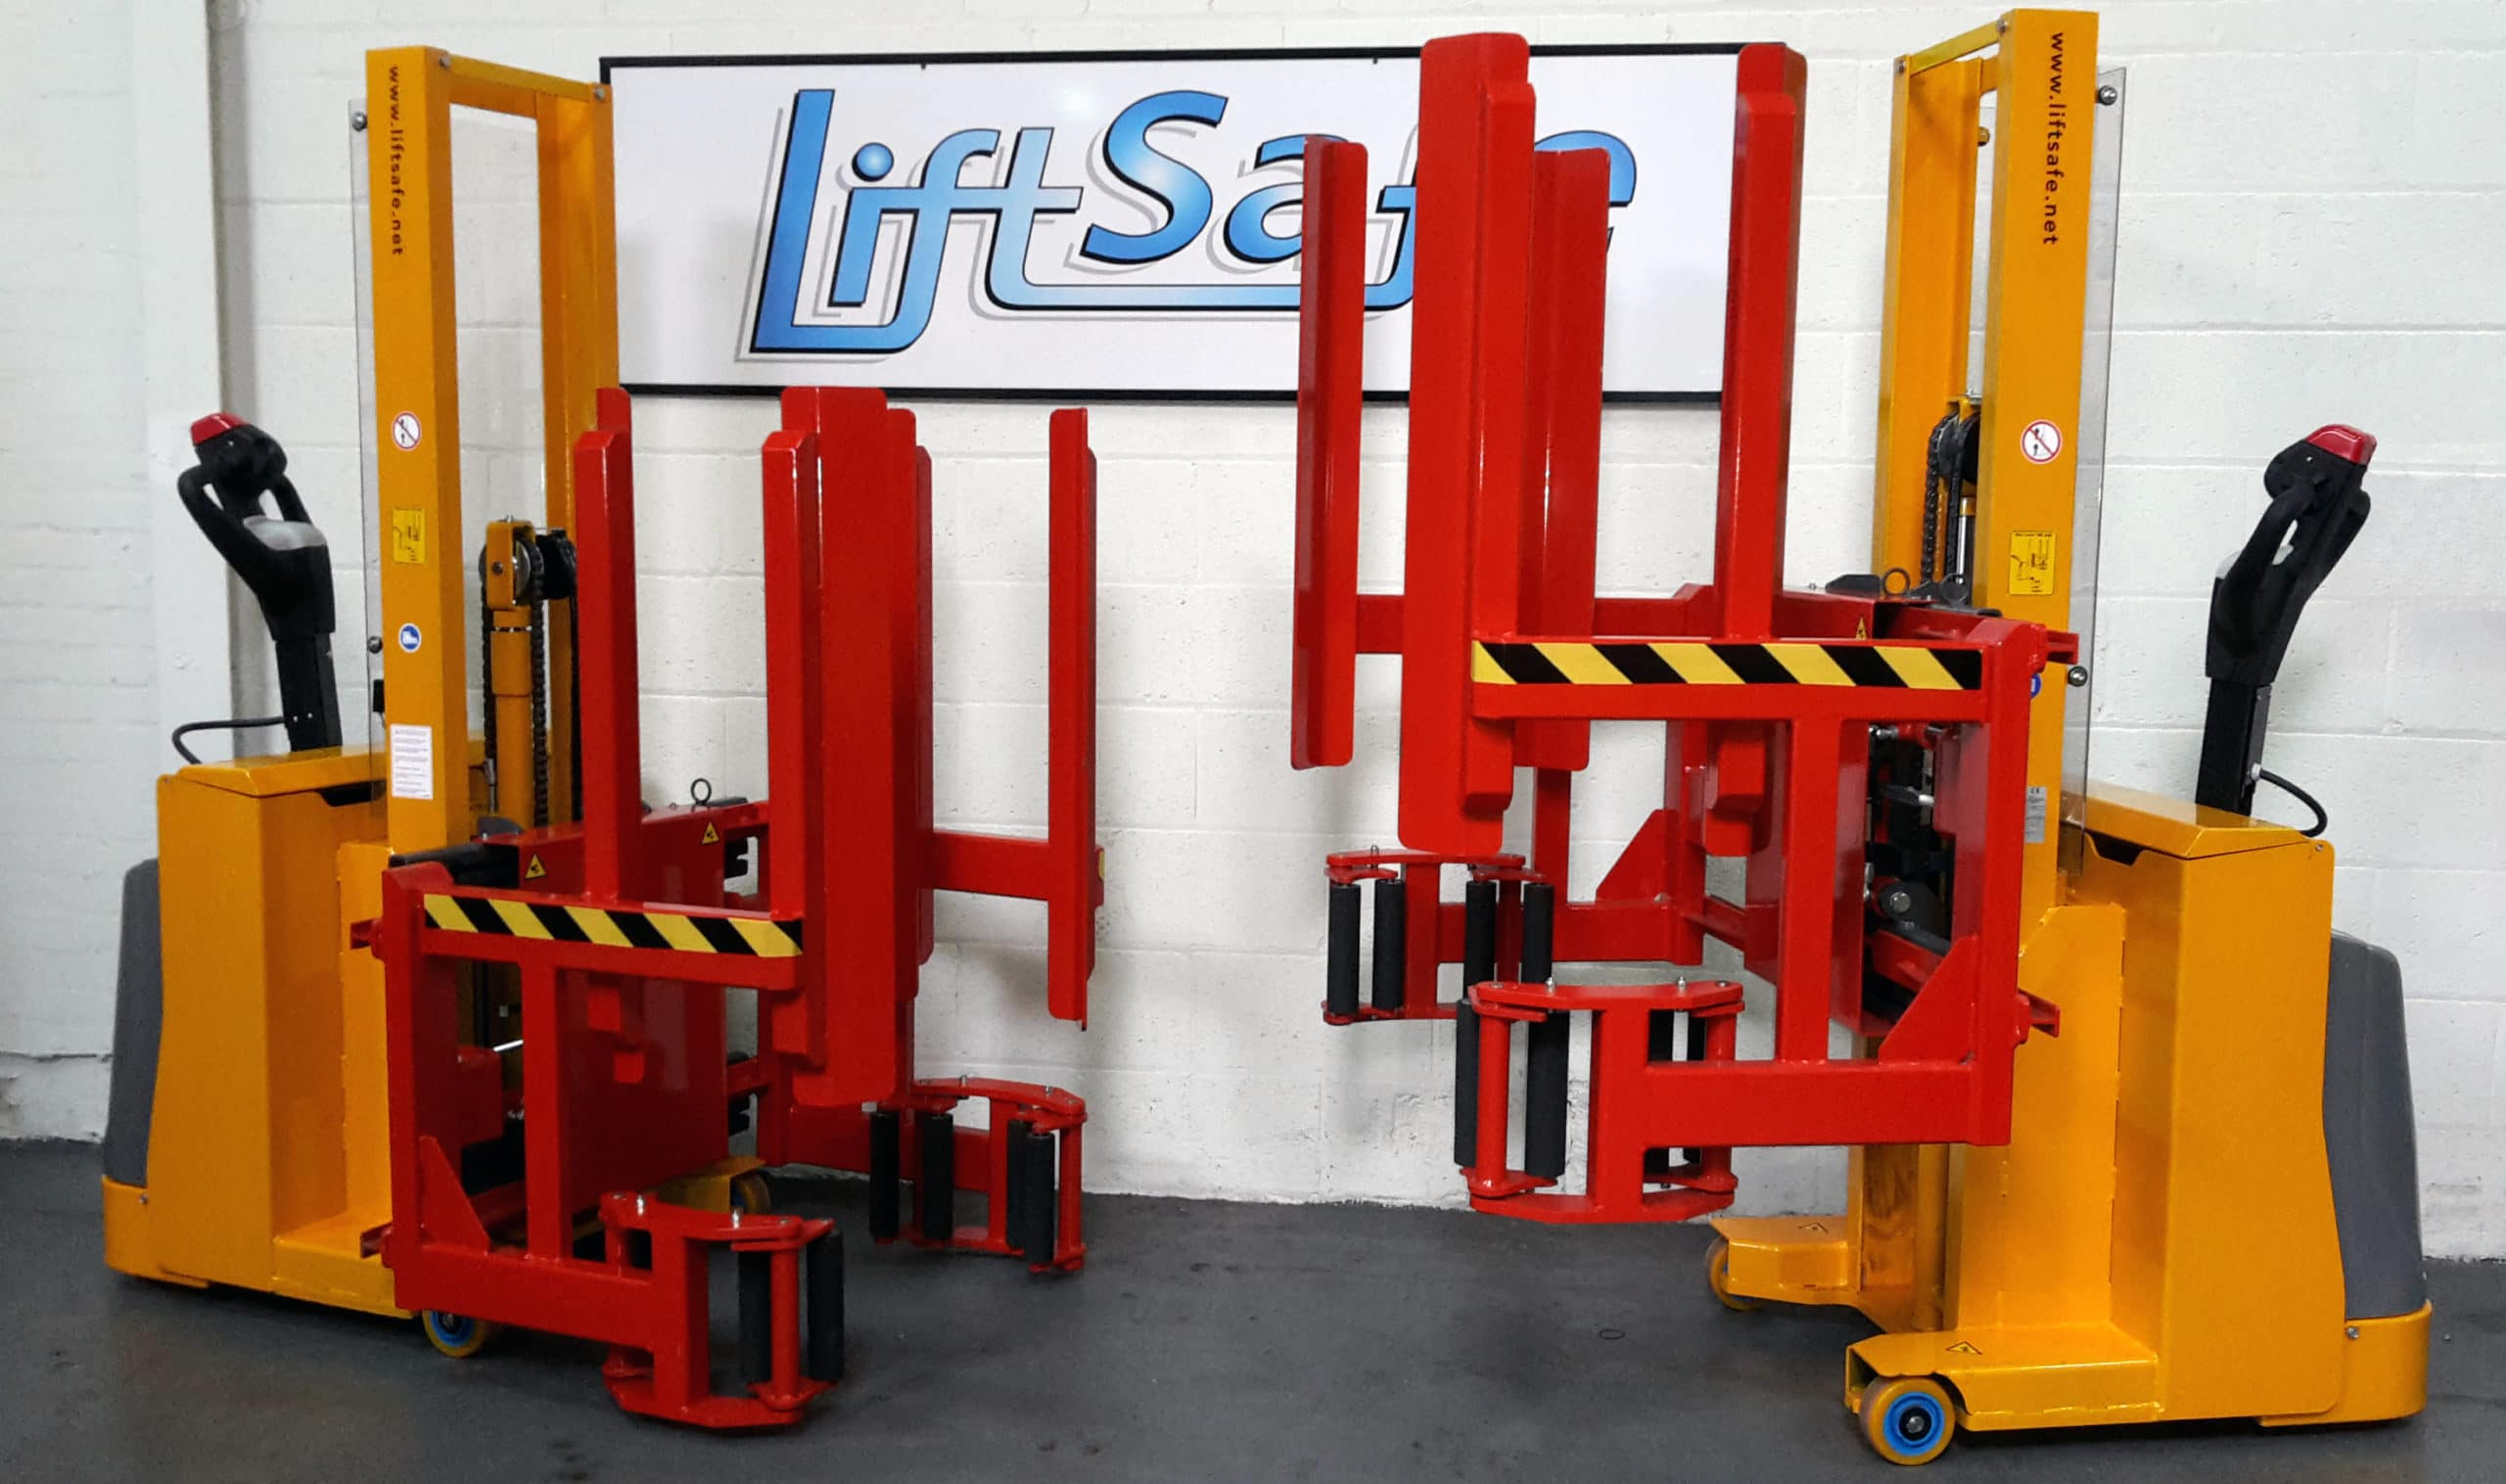 Lift Safe Supply Local Pharmaceutical Company With 2 Fully Bespoke Fully Powered Stackers